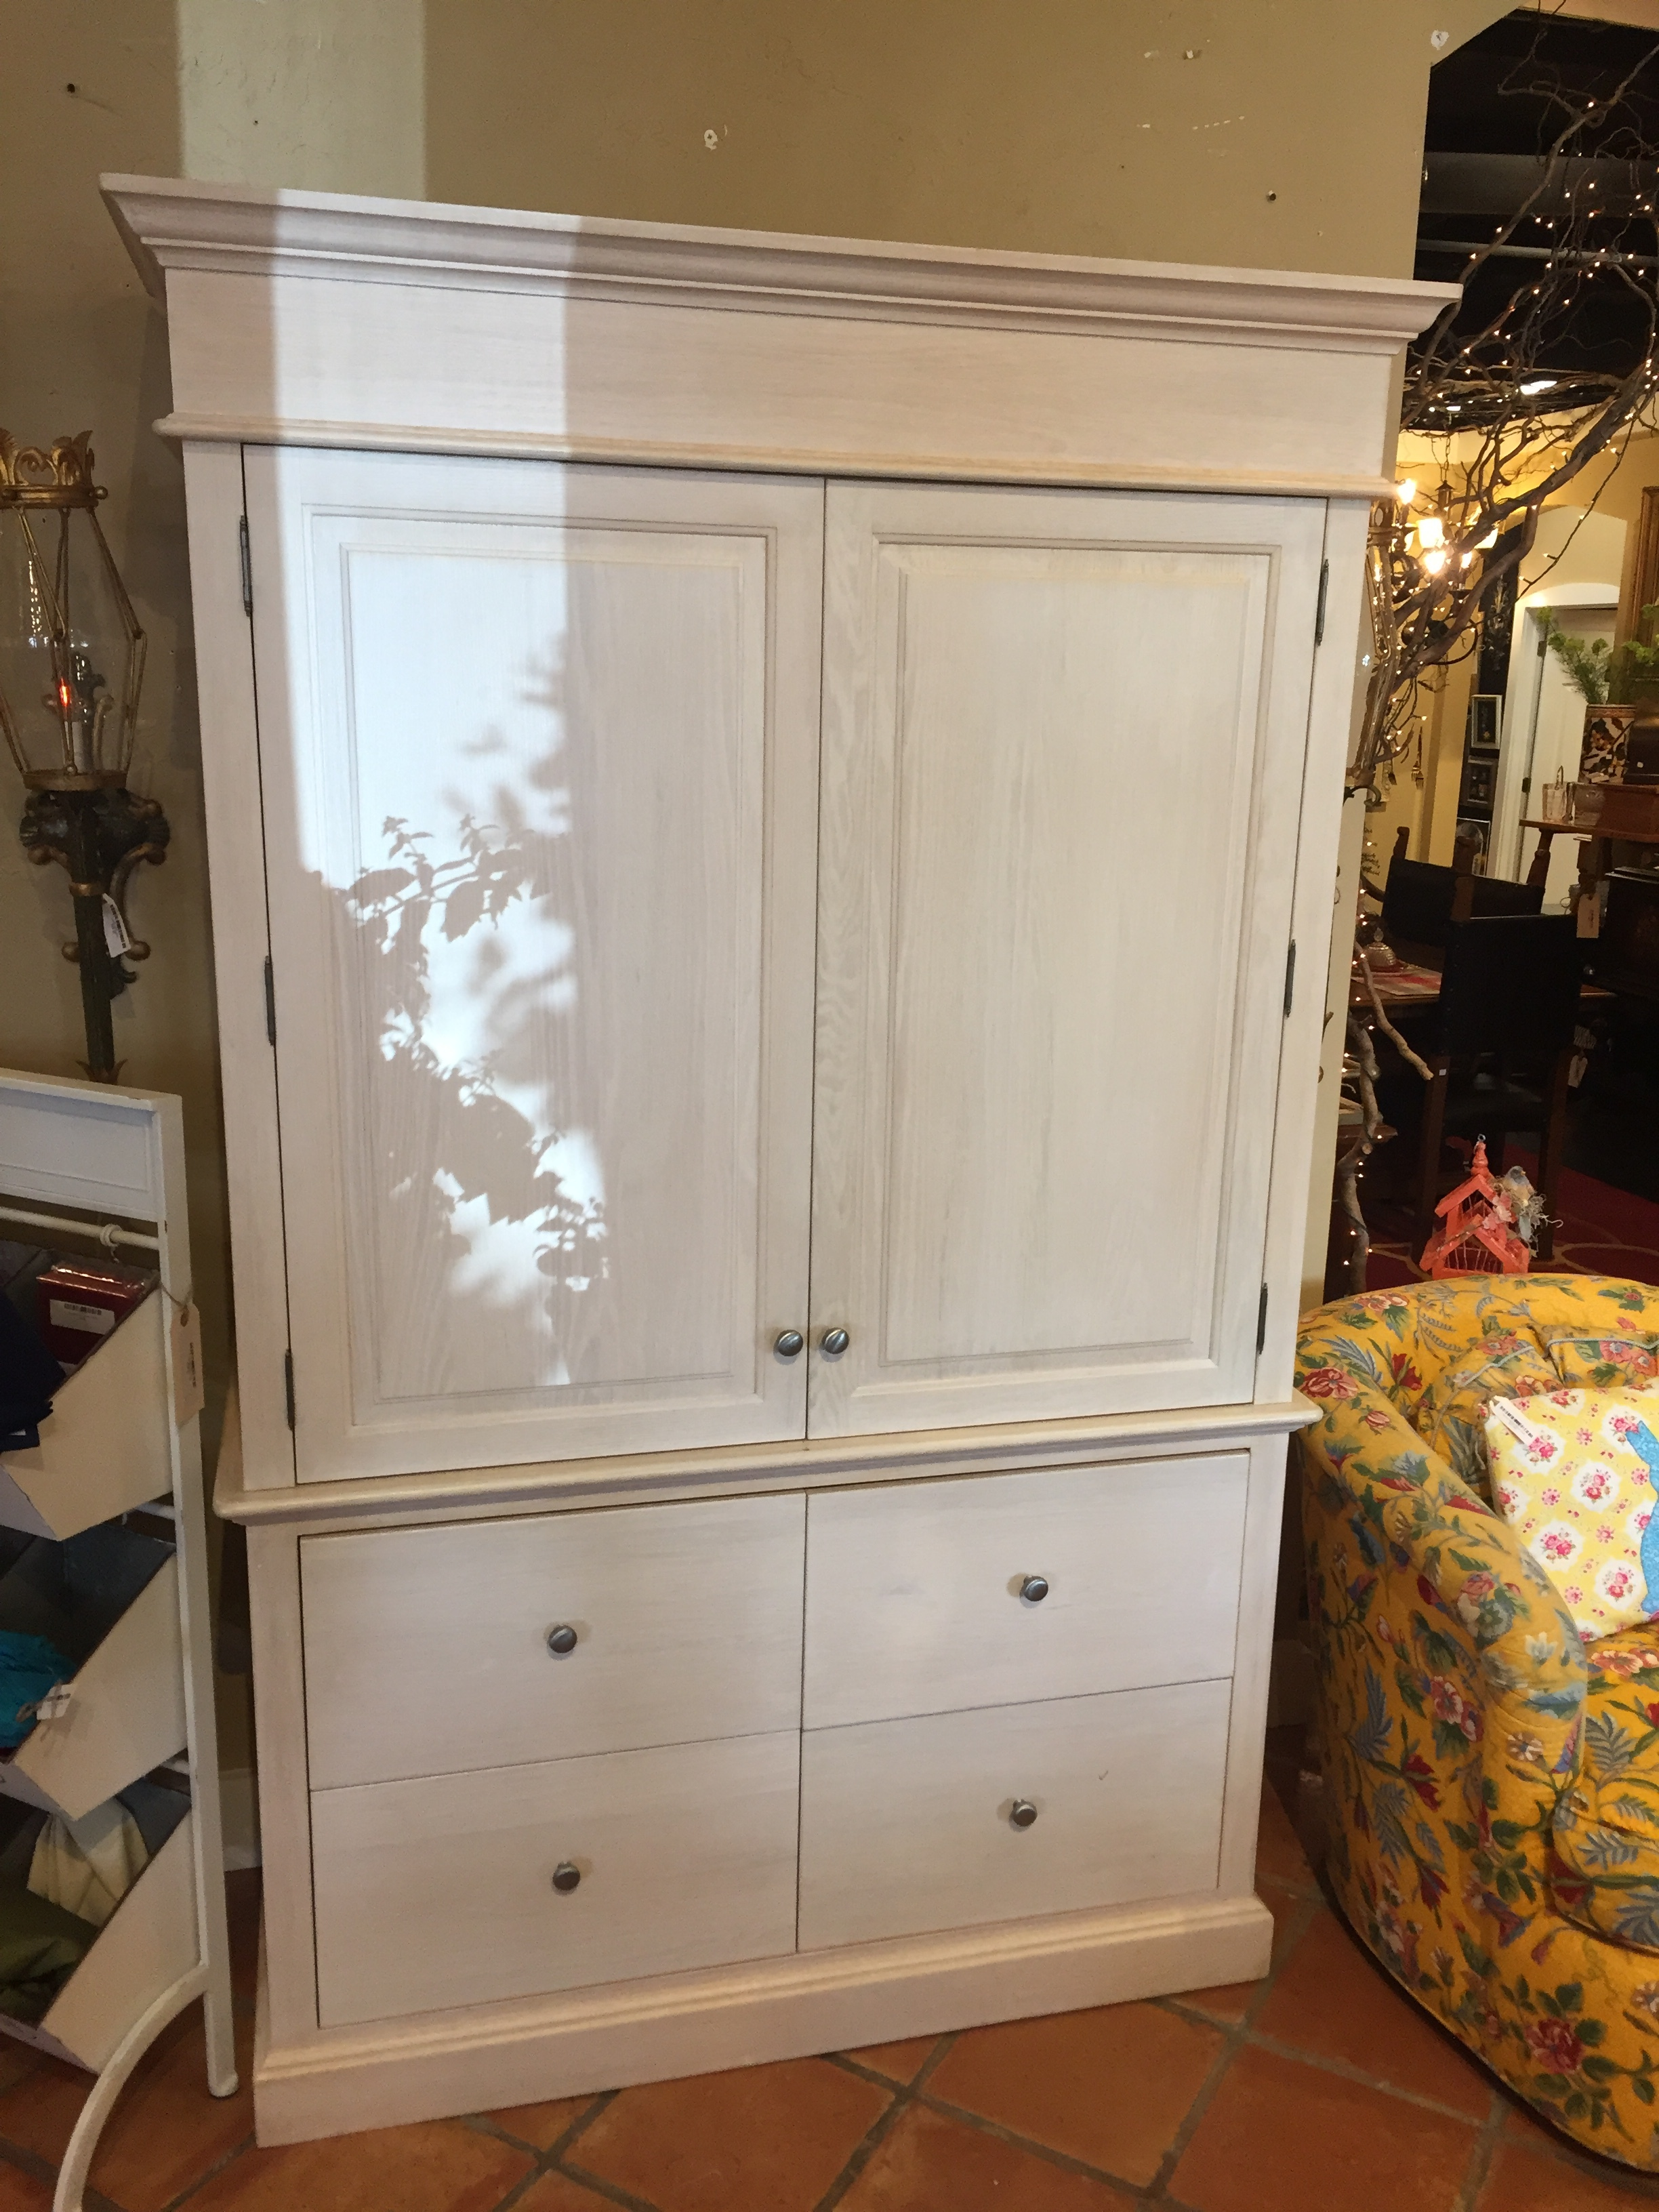 Large Cream Wardrobe $795.95 - C1060 22607